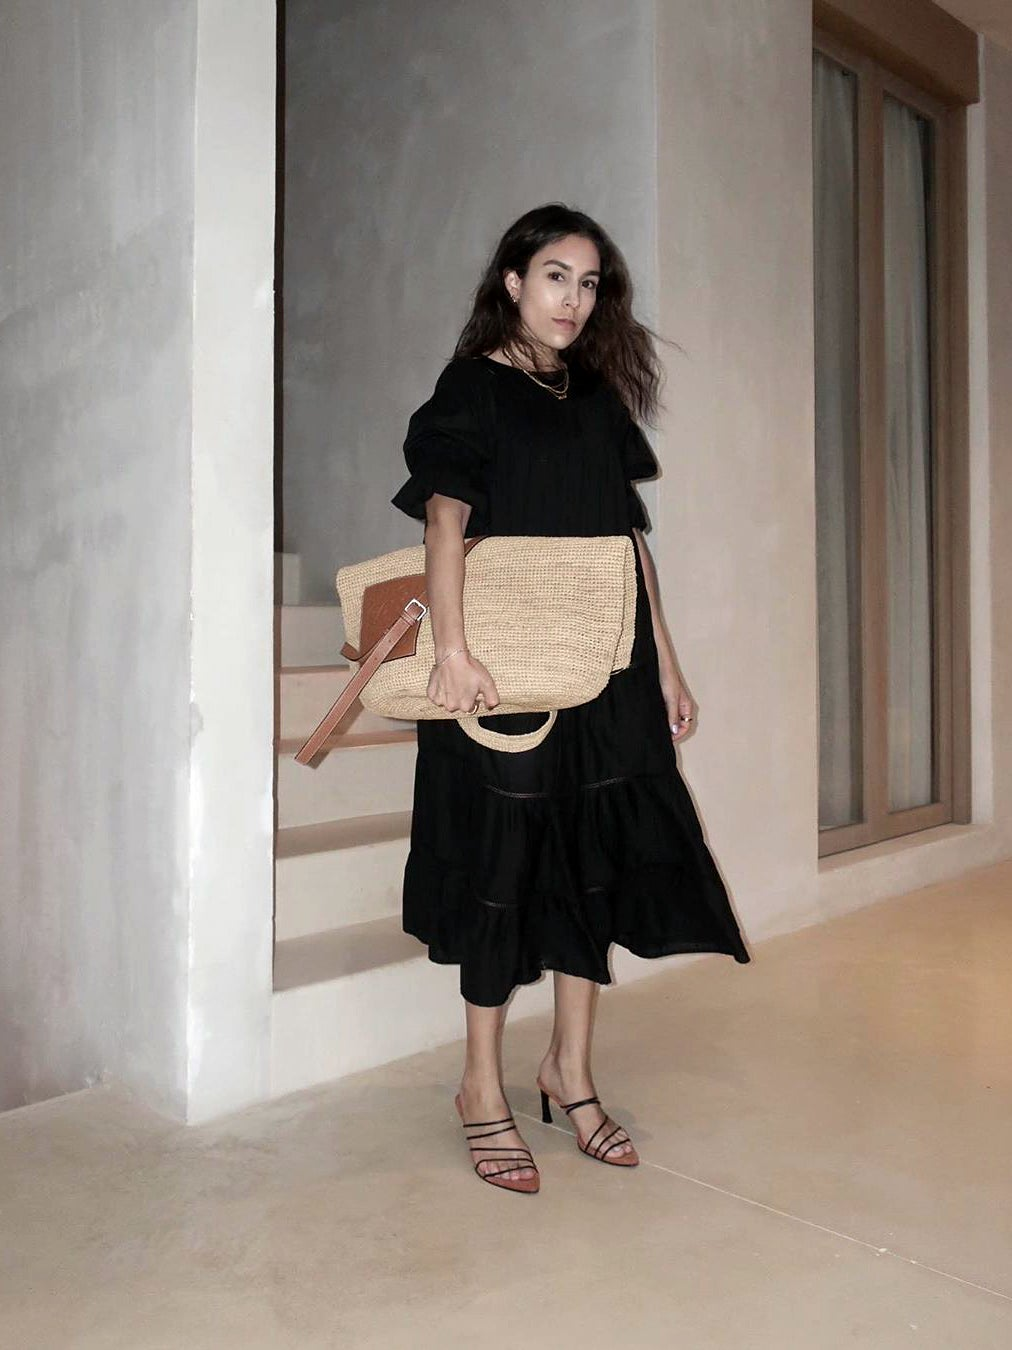 woman in black dress and straw bag